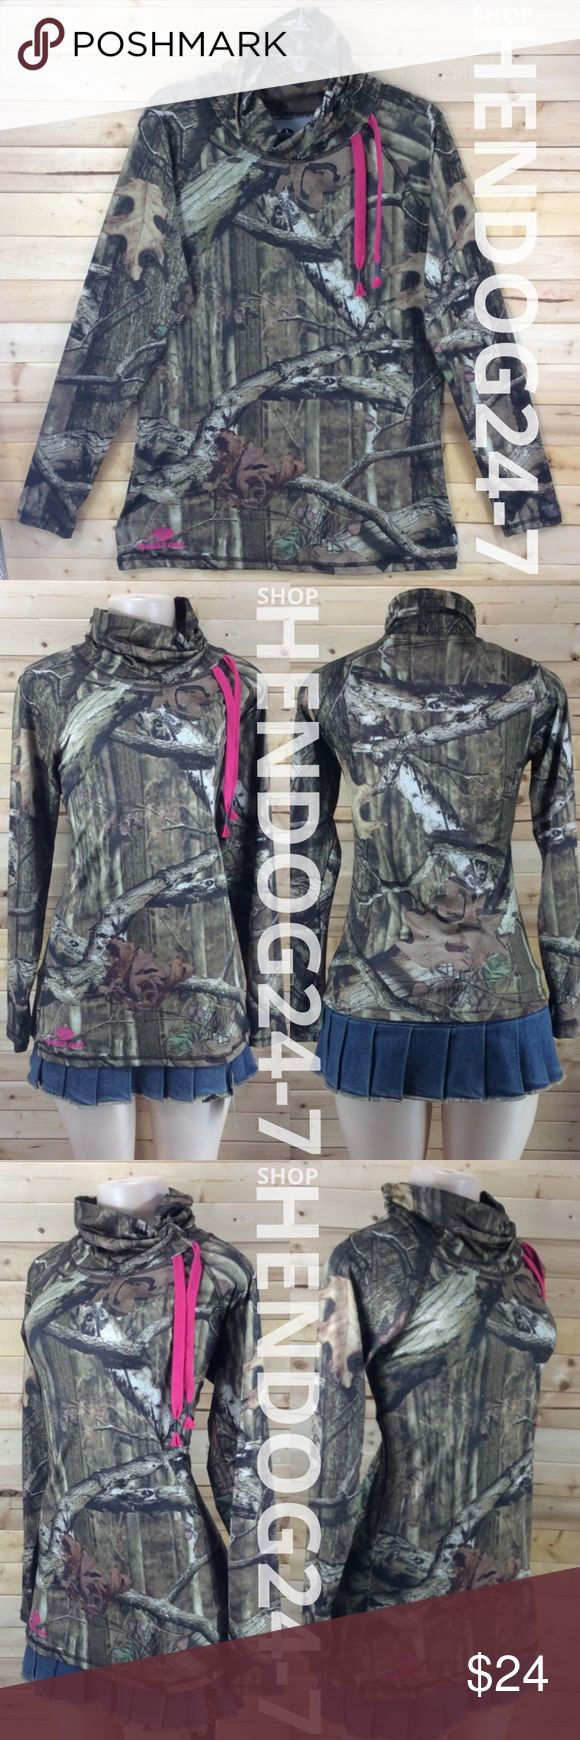 MOSSY OAK FLOP NECK PULLOVER L/SLV THUMB HOLES NEW WITHOUT TAGS - NEVER WORN - OVERSTOCK ITEM, LINE THROUGH BRAND NAME/LABEL.   MOSSY OAK BREAK-UP INFINITY PERFORMANCE PULLOVER WOMEN'S TOP - LONG SLEEVES - THUMB HOLES - 92% POLYESTER, 8% SPANDEX - MADE IN GUATEMALA - MSRP $50 MOSSY OAK BREAK-UP INFINITY Tops Sweatshirts & Hoodies